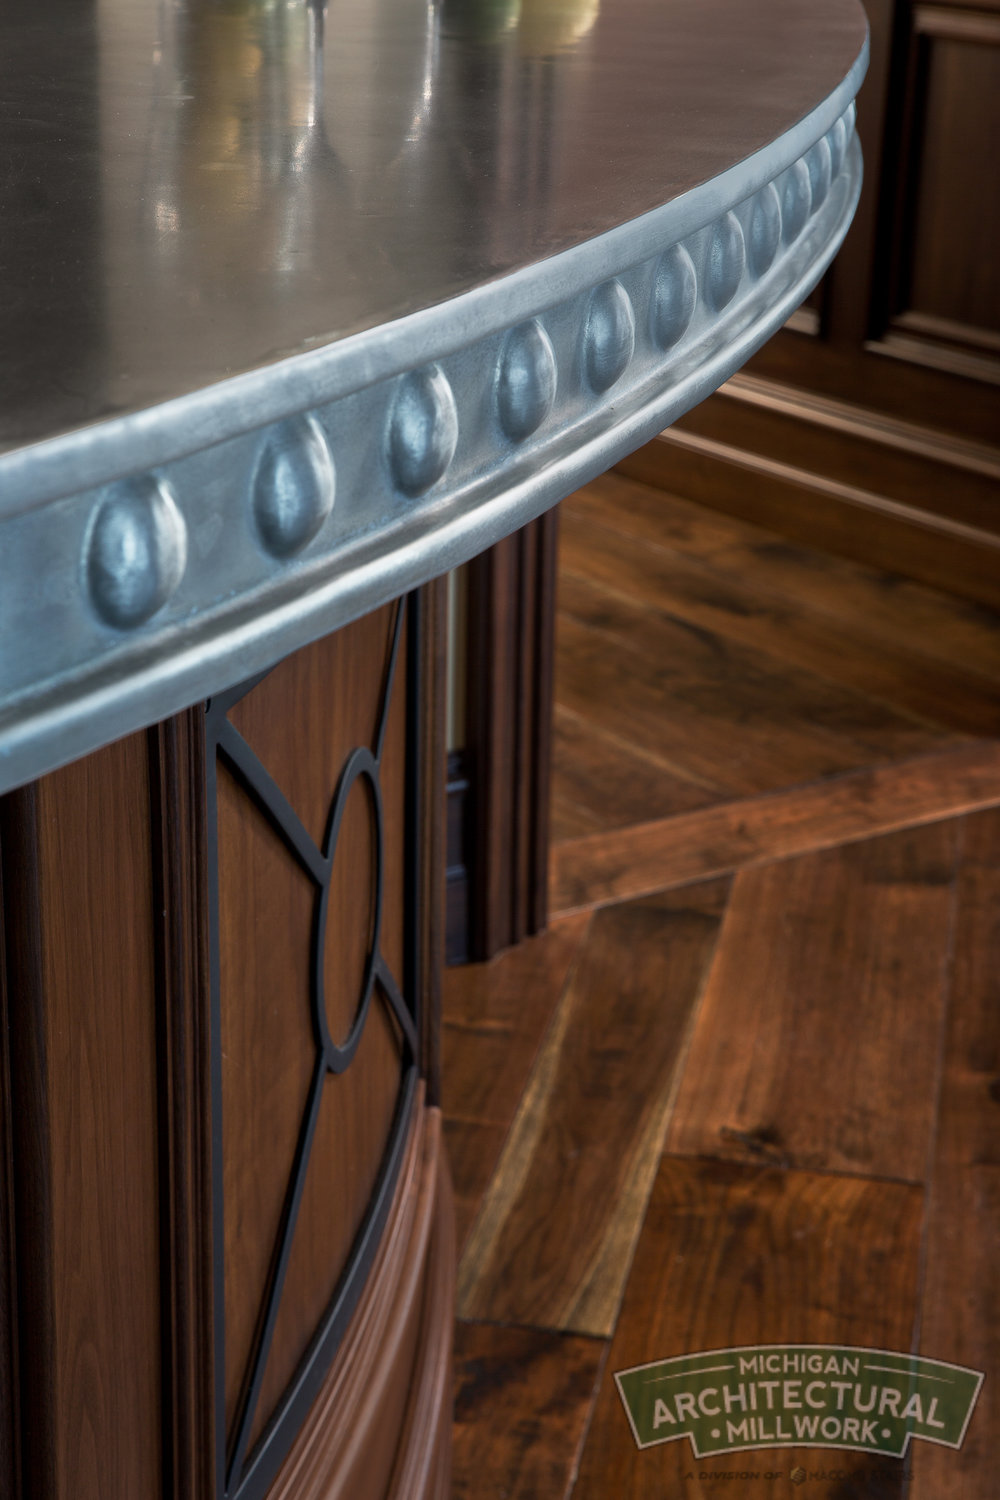 Michigan Architectural Millwork- Moulding and Millwork Photo-42.jpg